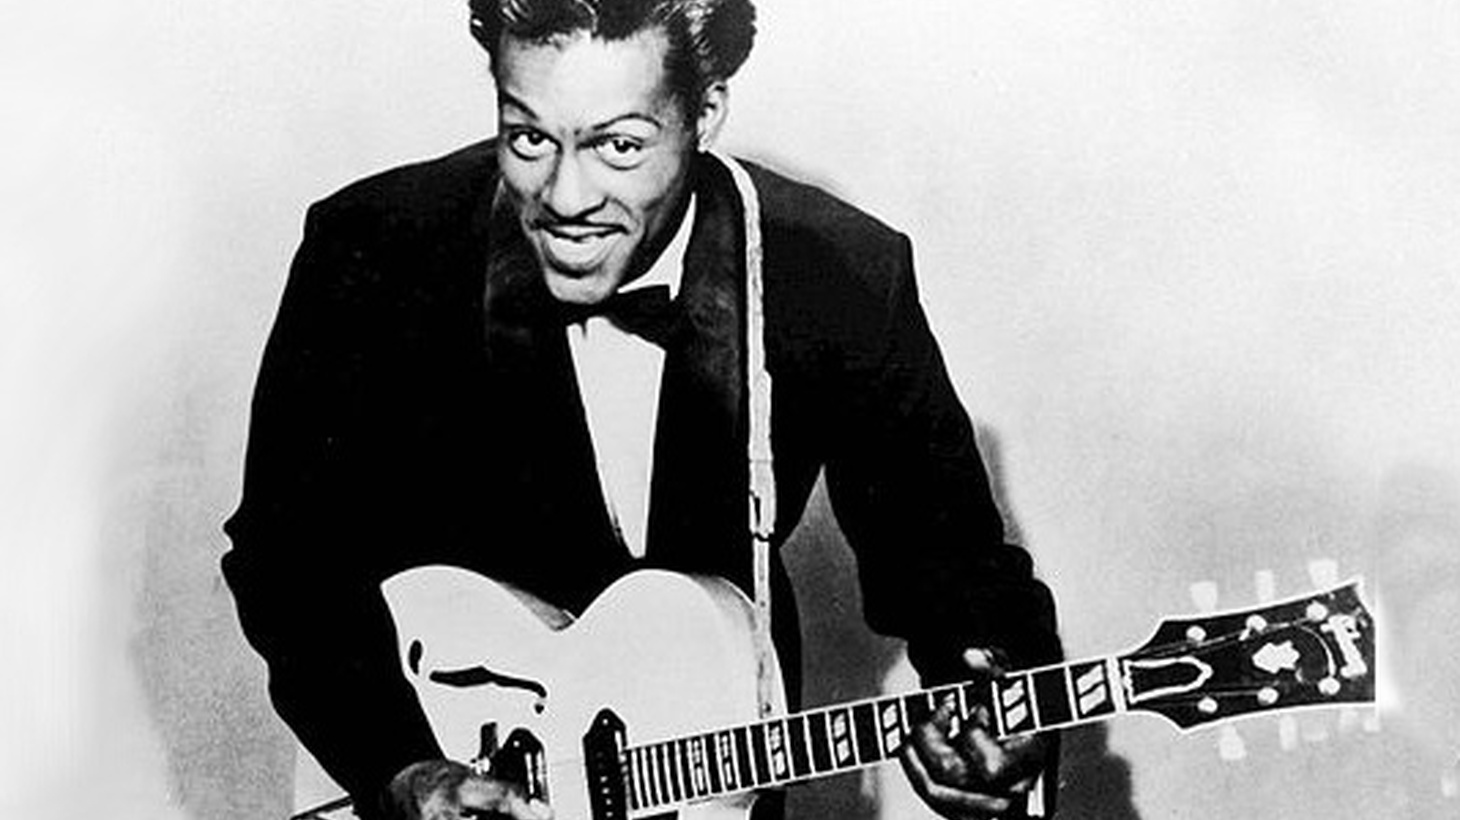 Gary Calamar pays tribute to rock 'n' roll legend Chuck Berry, who died on Saturday at the age of 90.